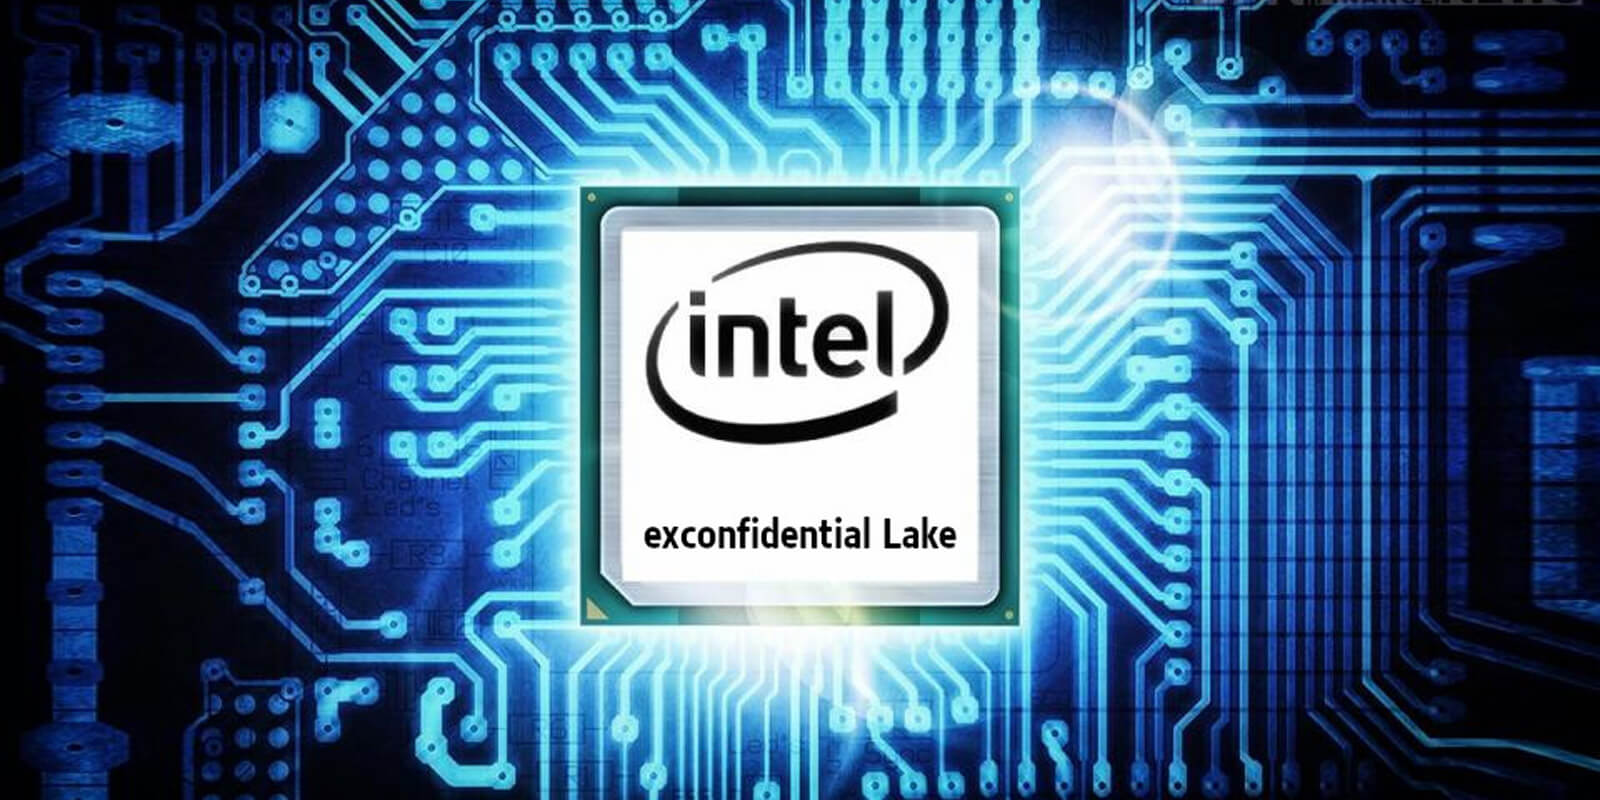 Intel perde 20 GB di codice sorgente e documenti; probabili backdoor